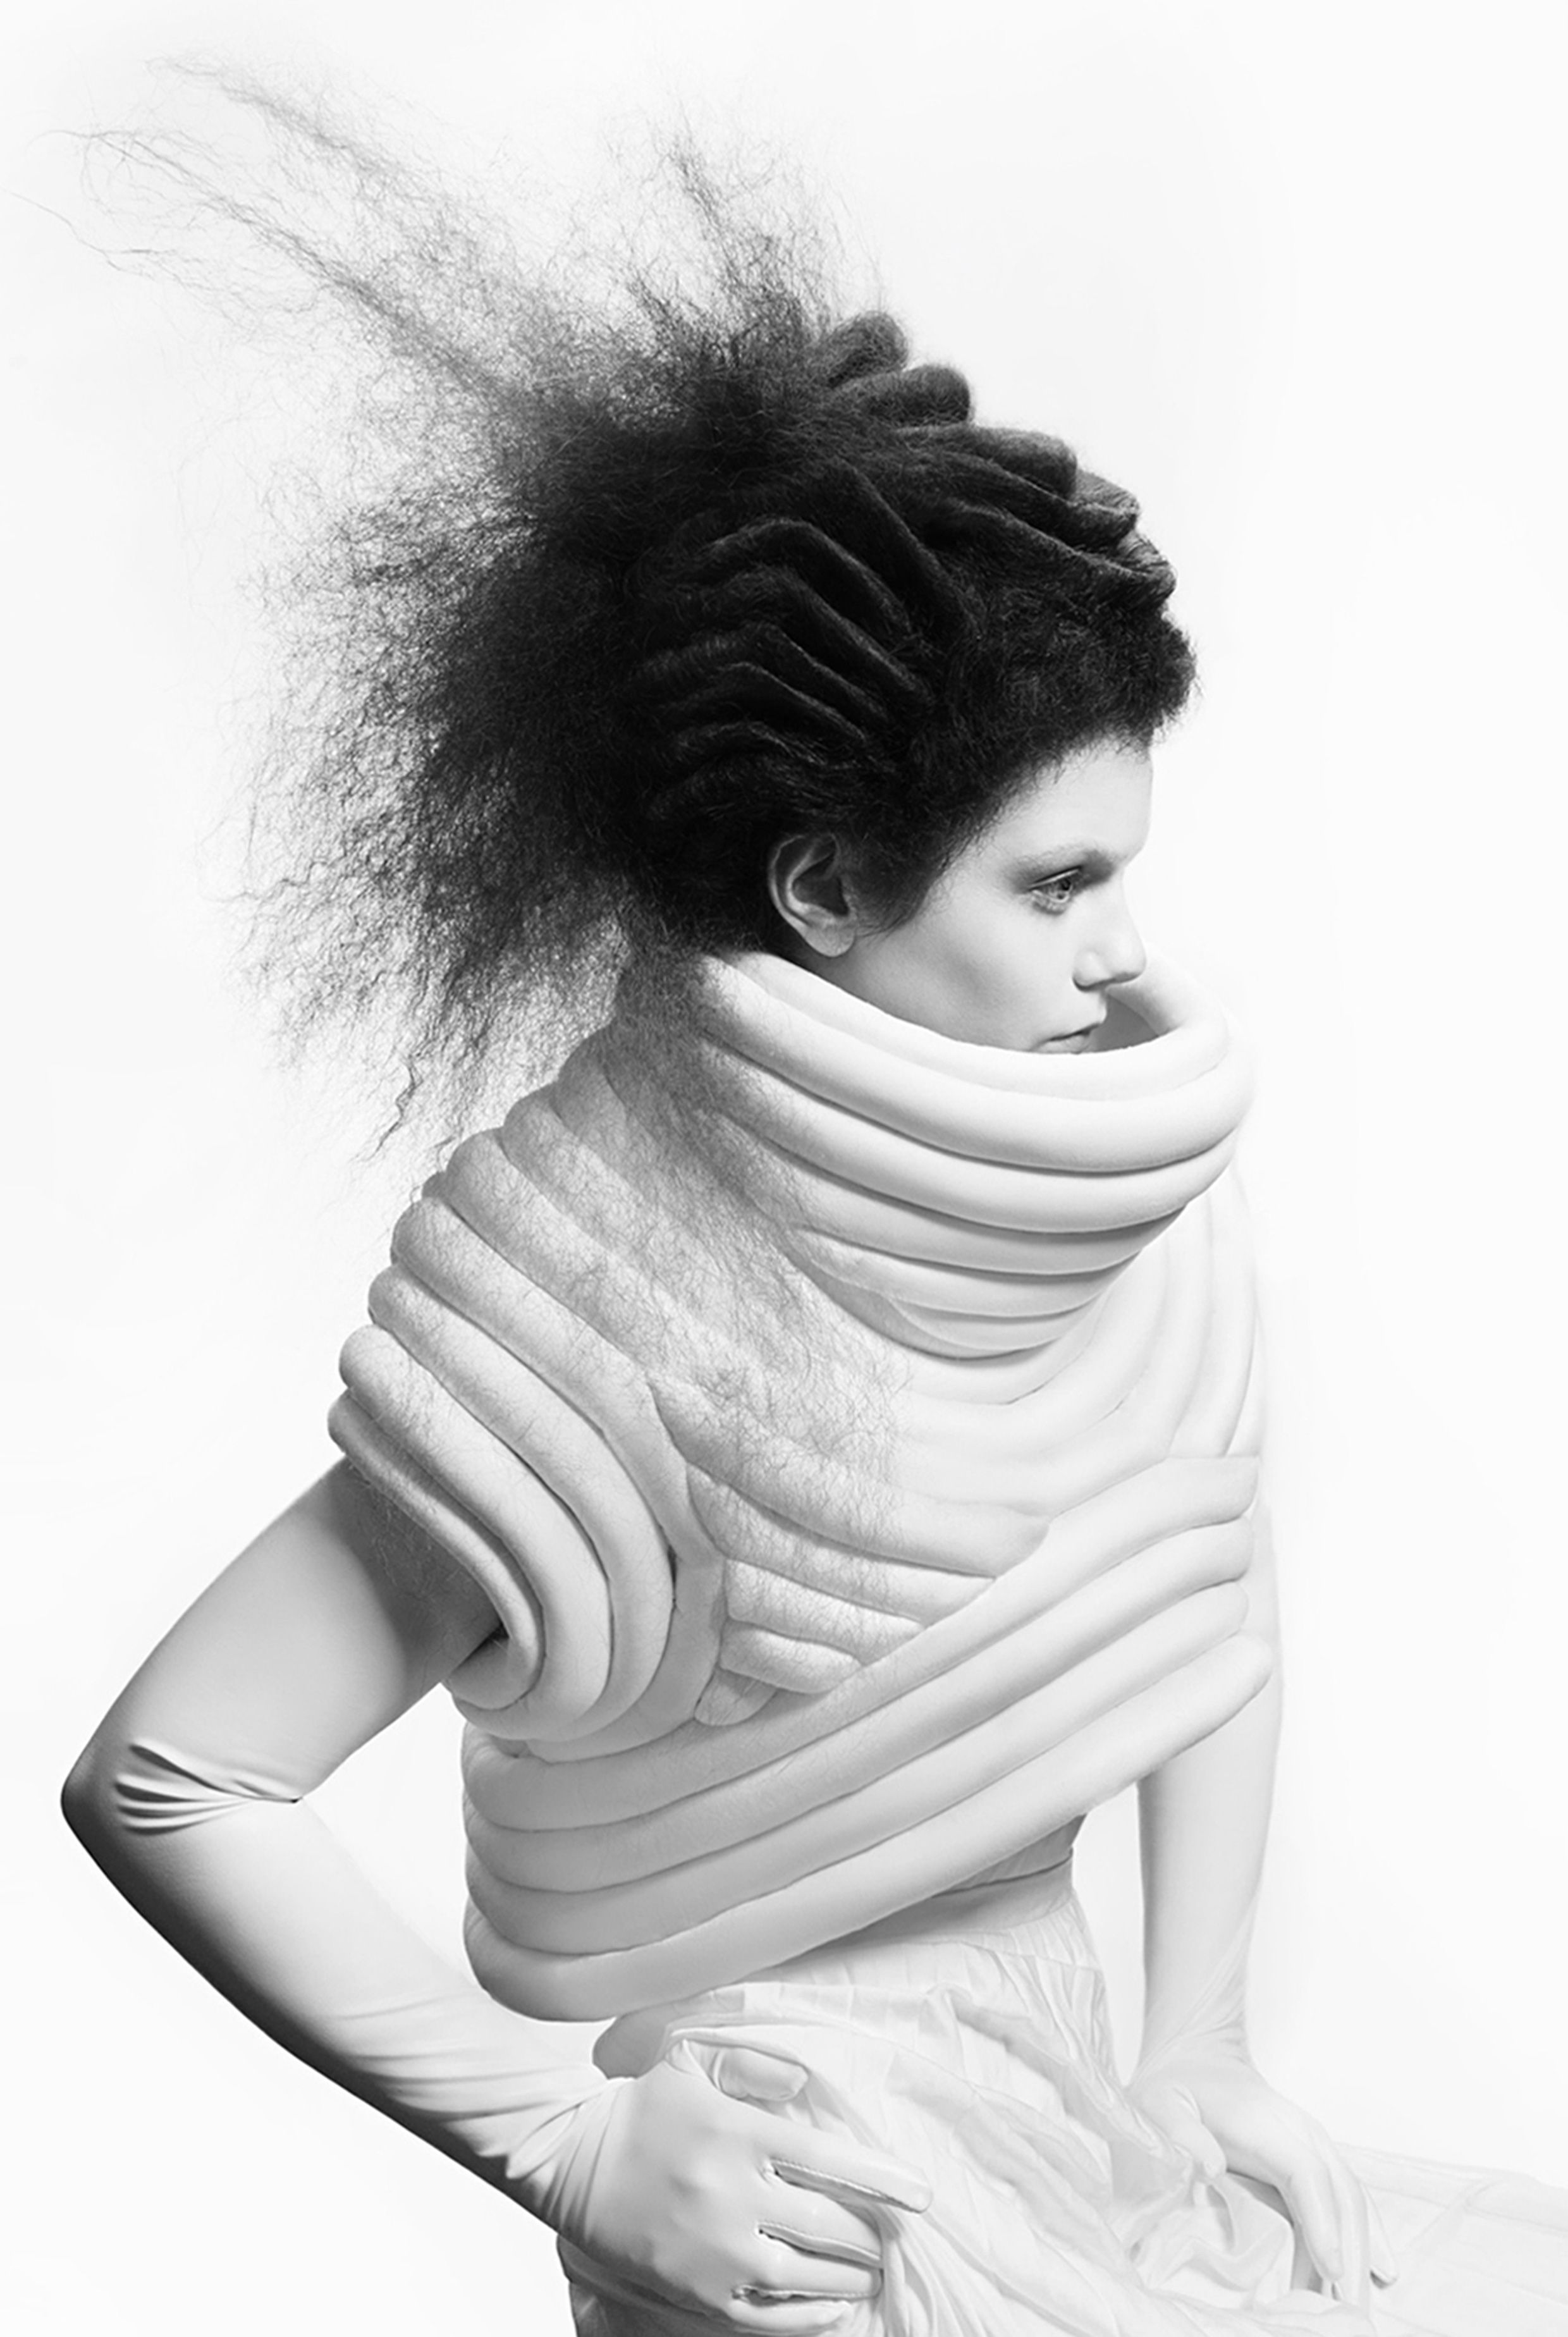 1000 Images About Artistique On Pinterest Stylists Hairstyles